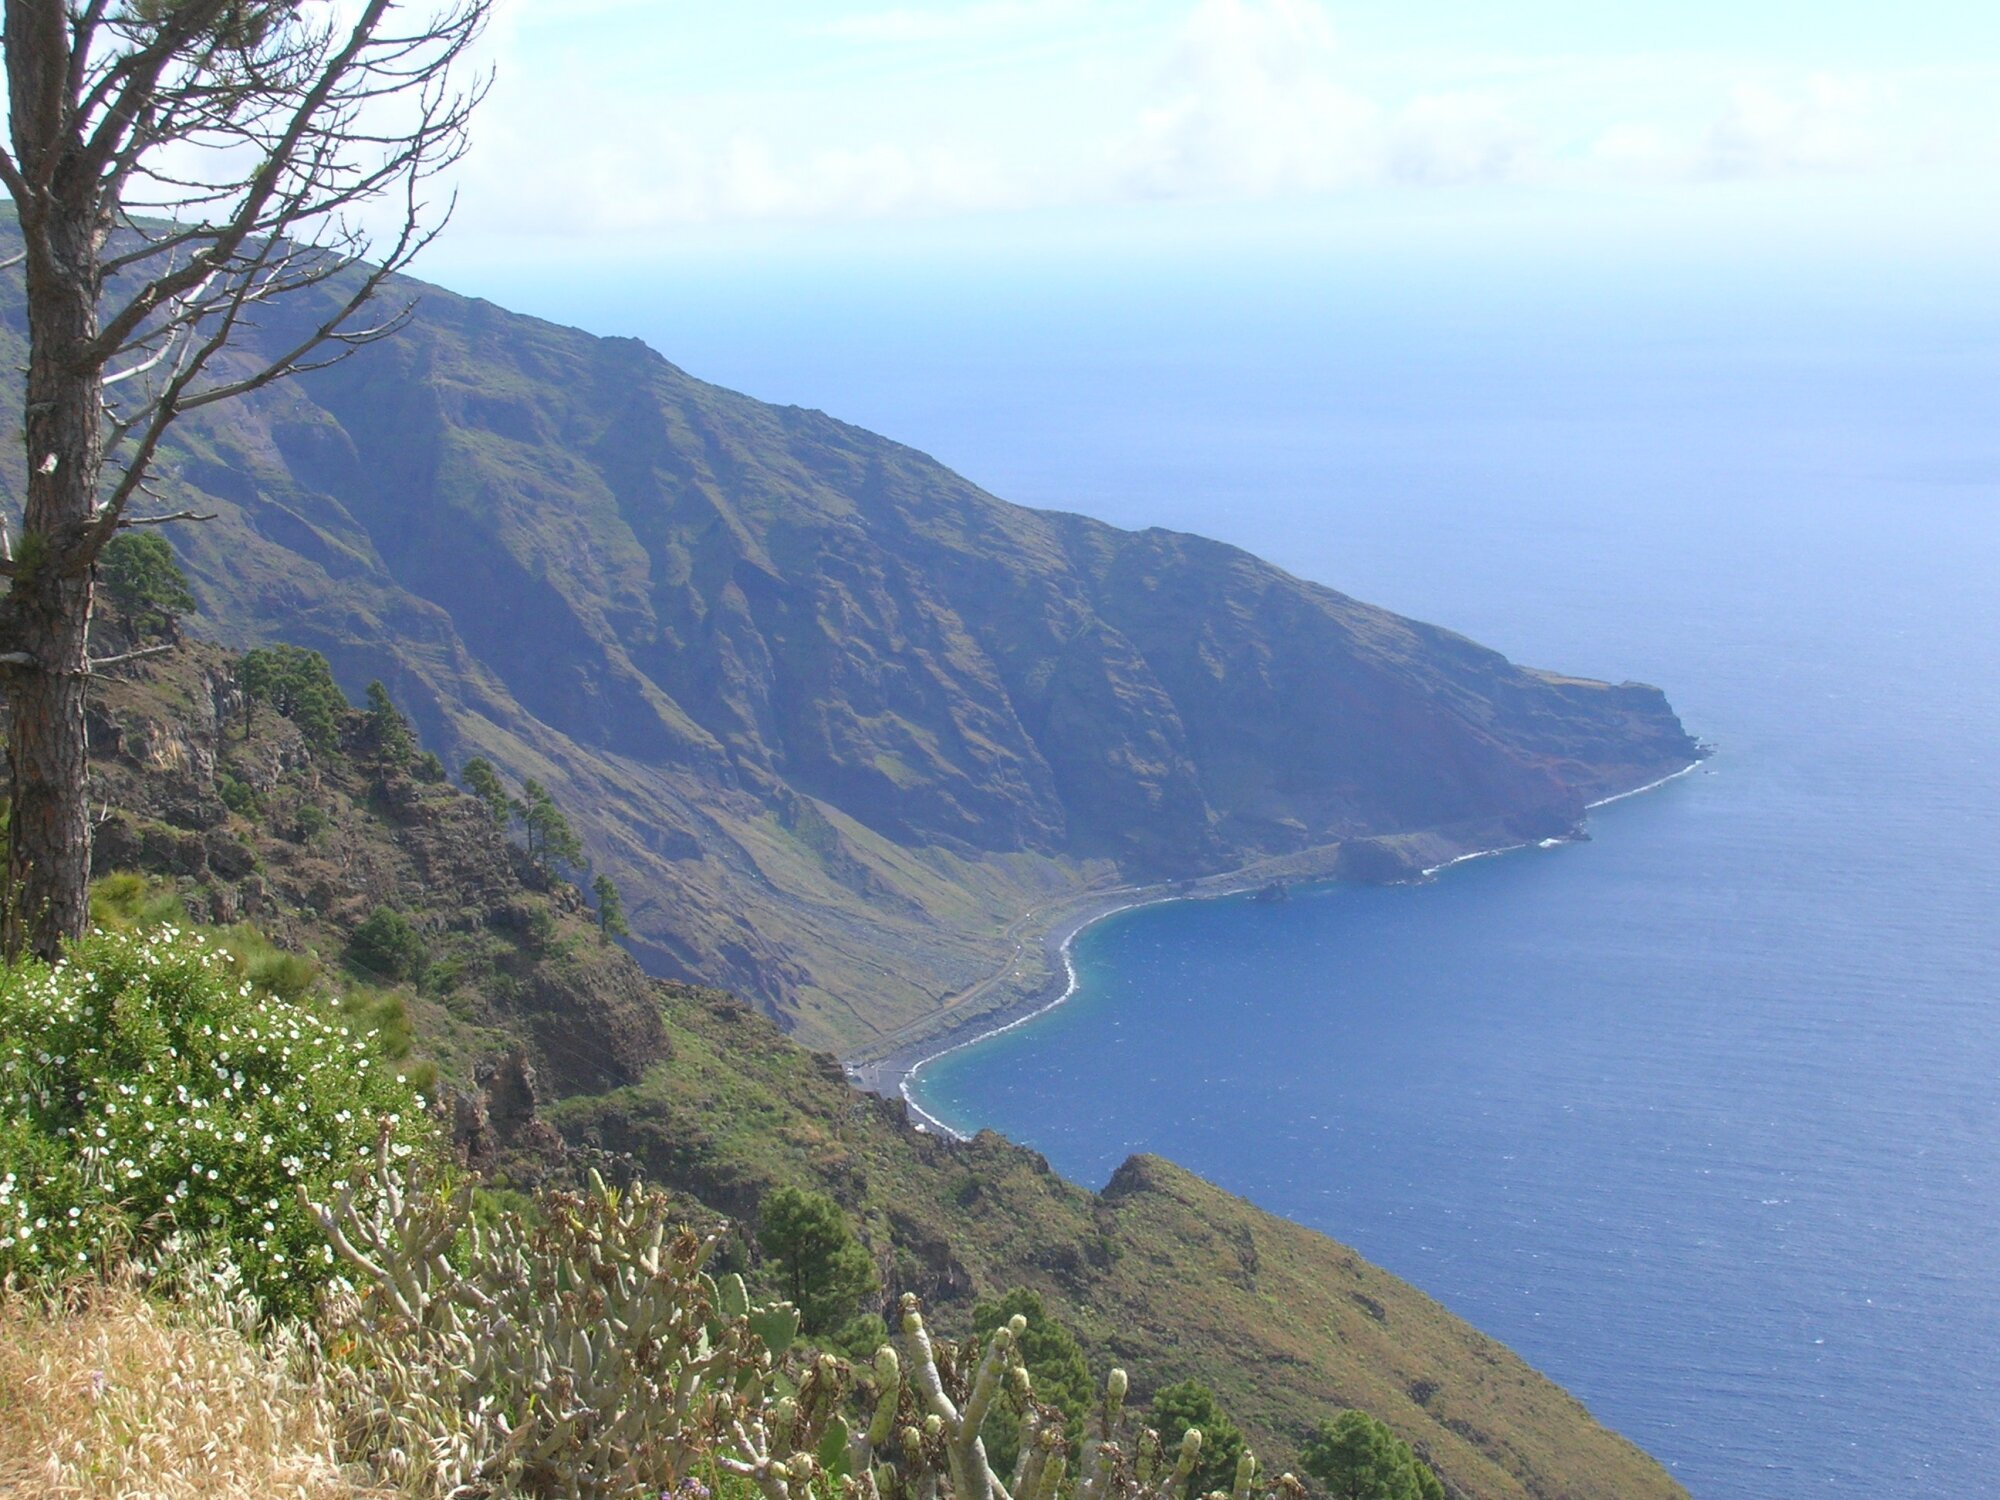 El Hierro: Worlds First Self Sustained Island!